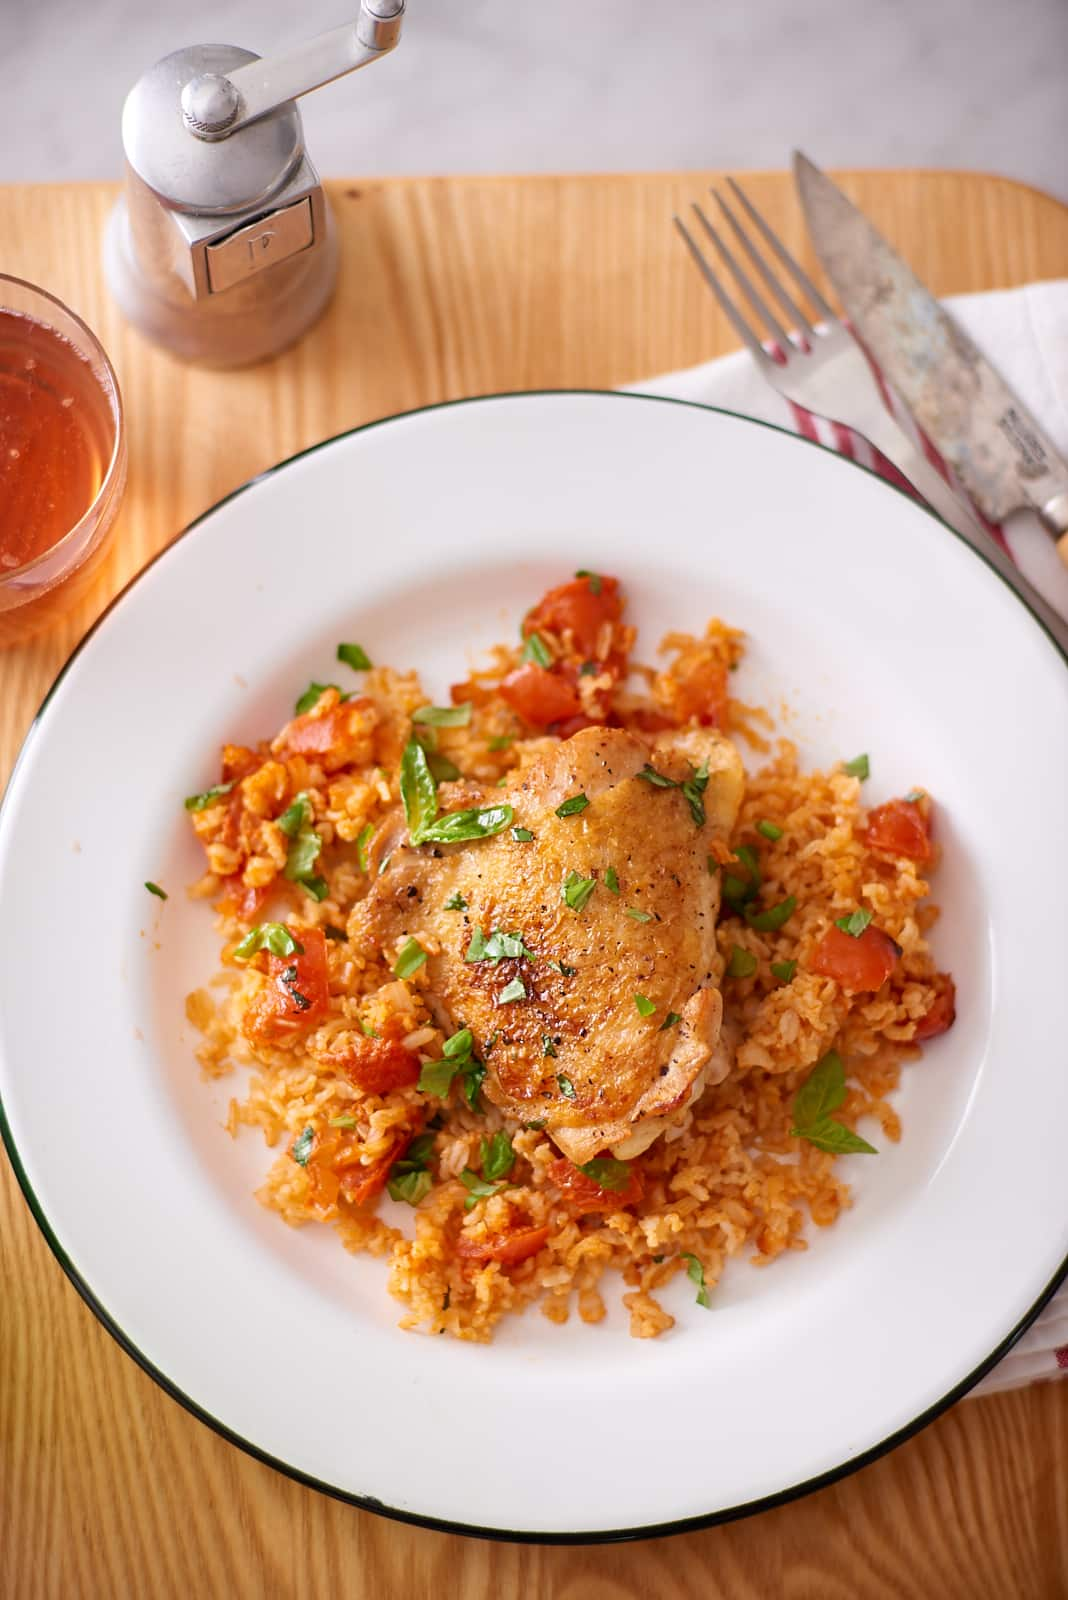 Make Skillet Chicken Thighs with Creamy Tomato Sauce Tonight